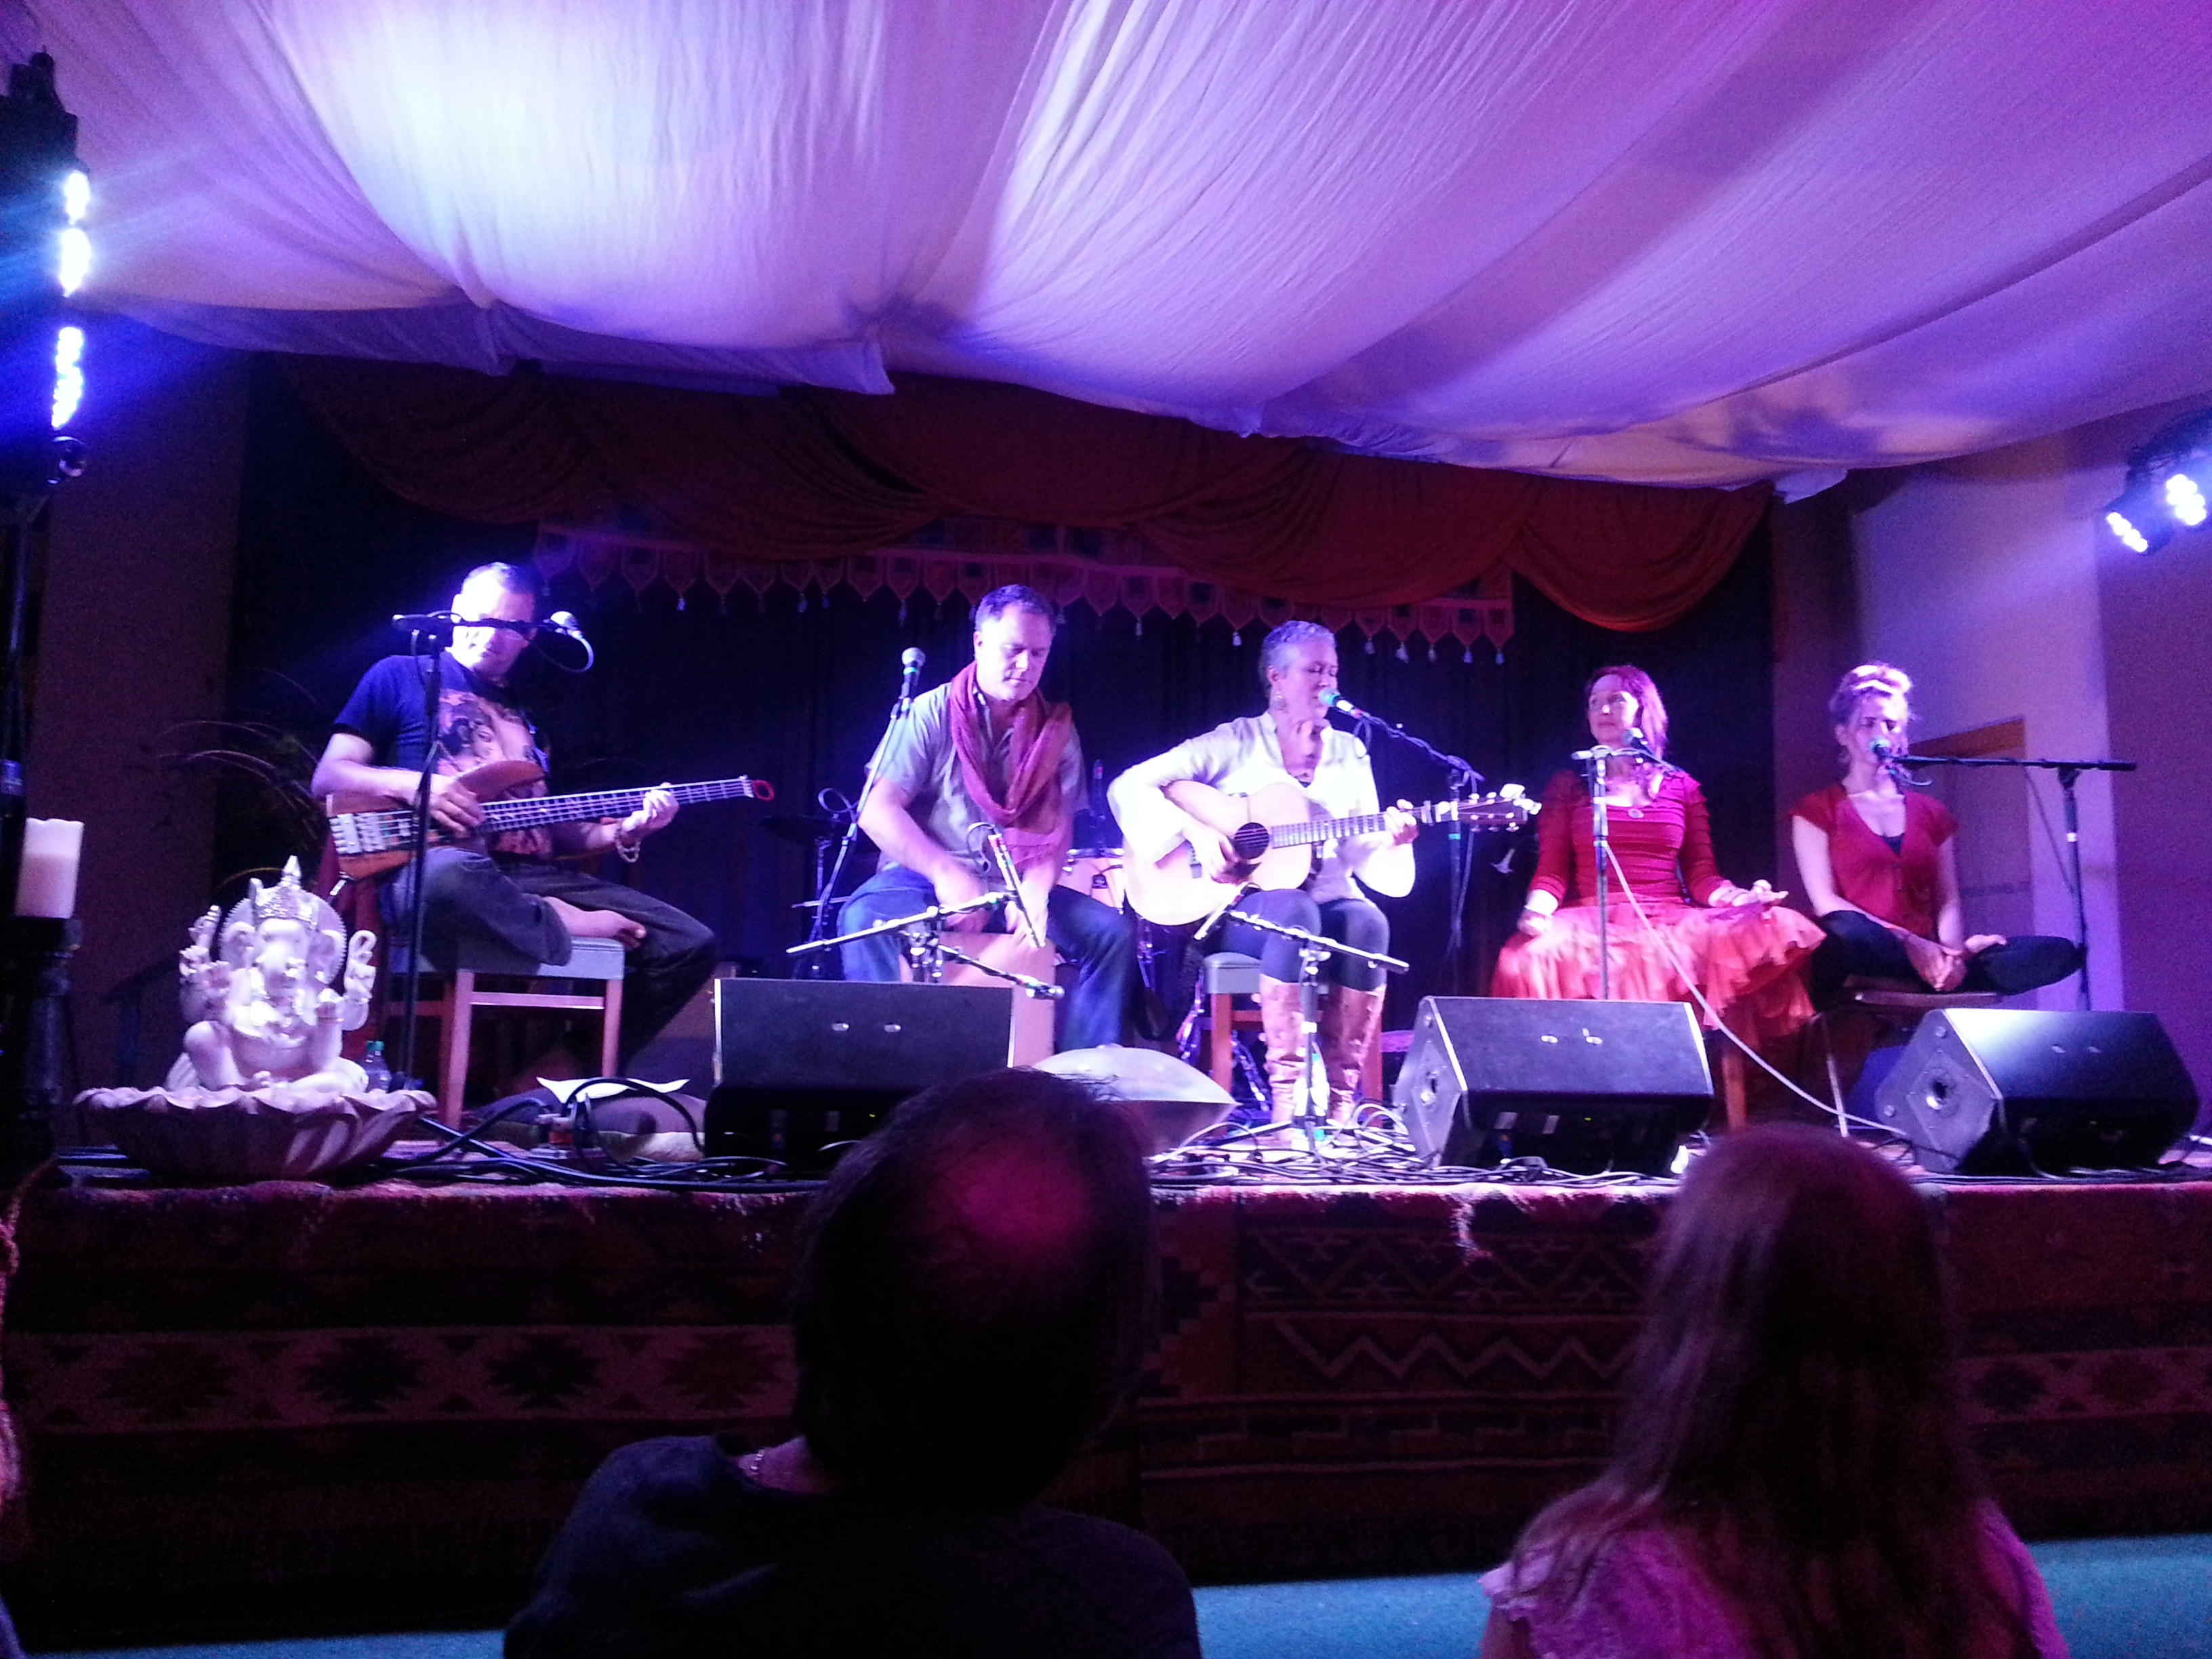 Ahimsa Festival, Windham New York, 2014 with John de Kadt, Adam Bauer, Lee Harrington, Carrie Grossman